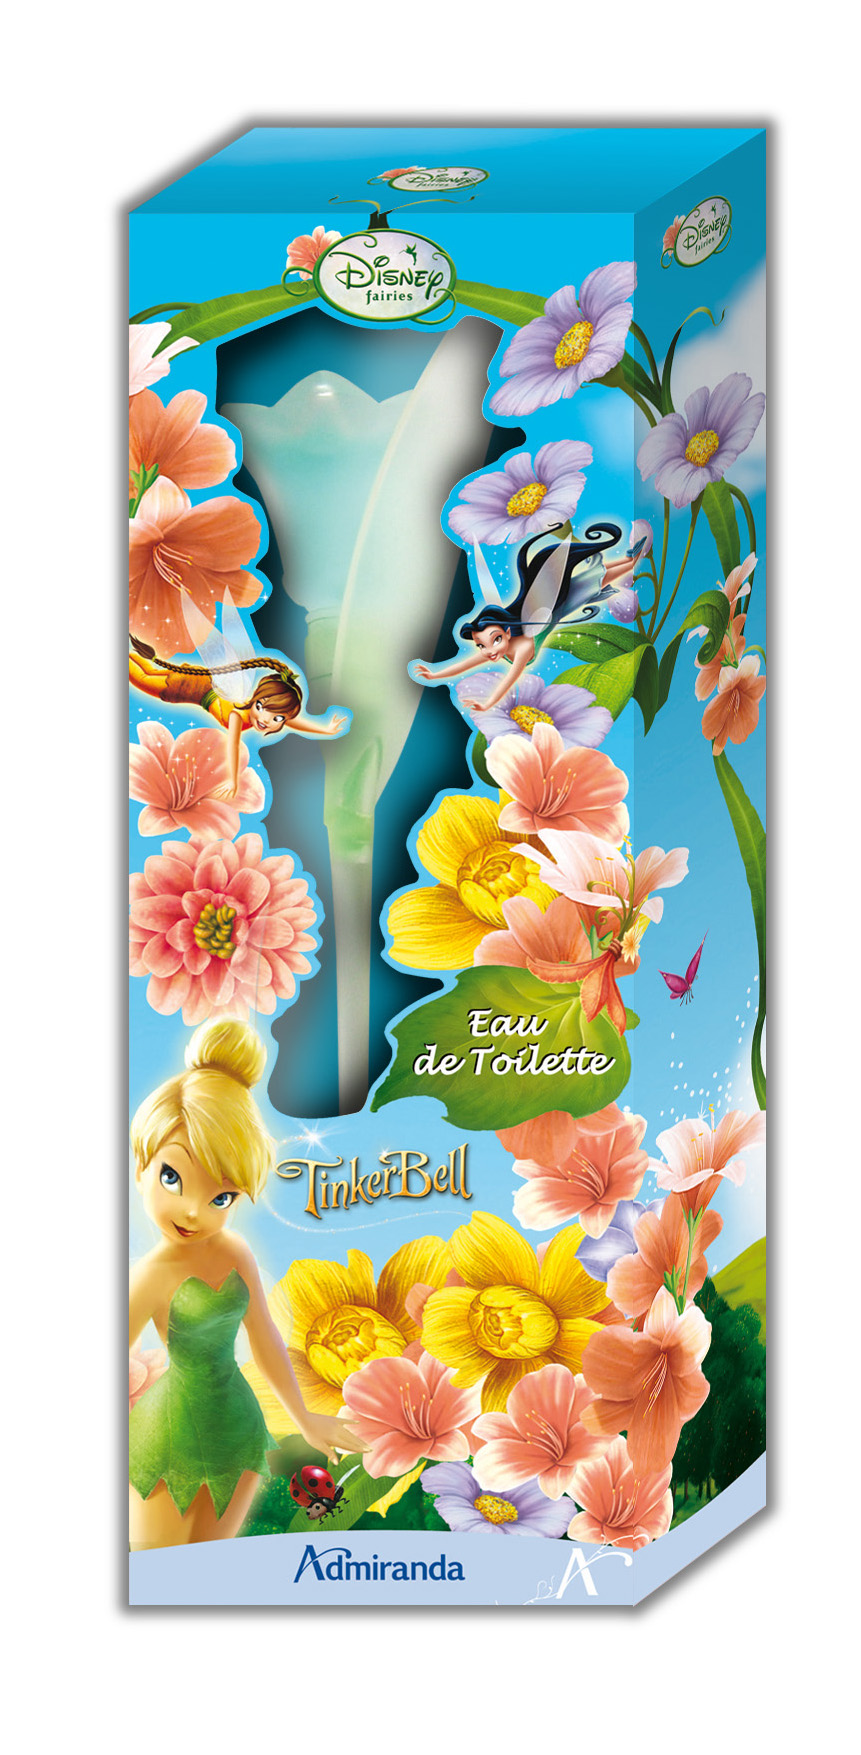 Disney-Admiranda Fairies parfum